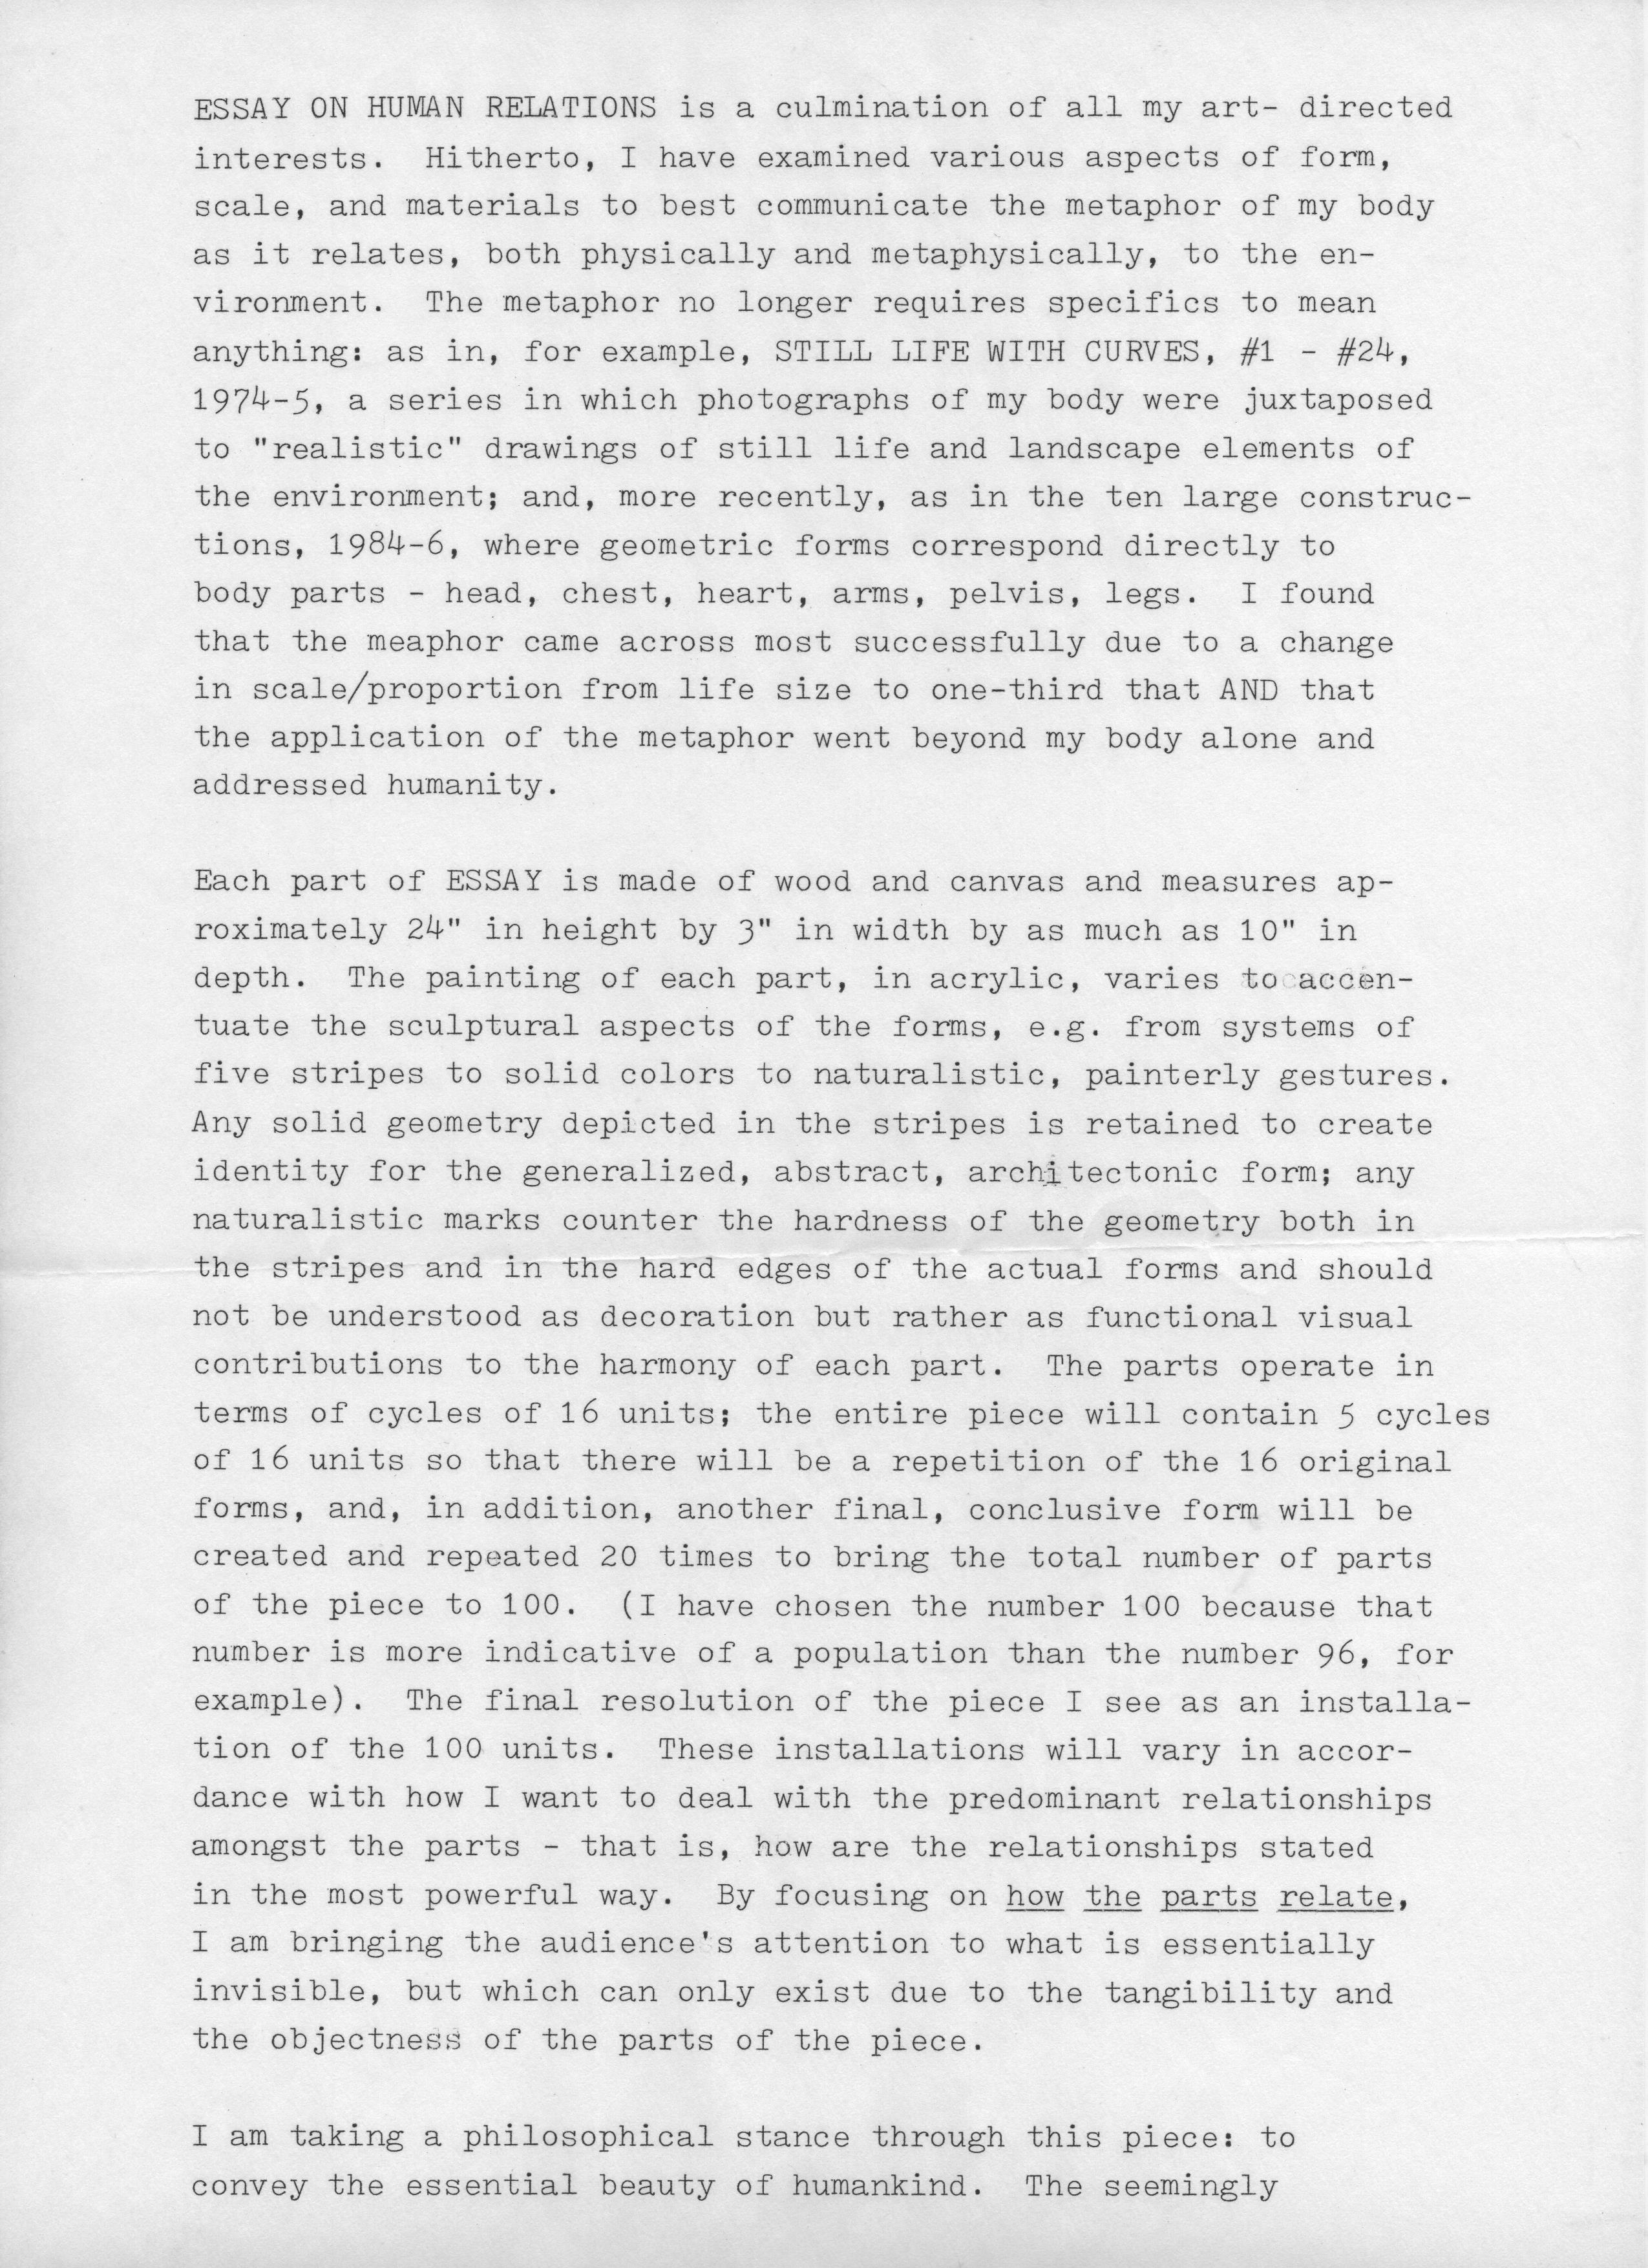 Statement, October, 1988 page one.jpeg